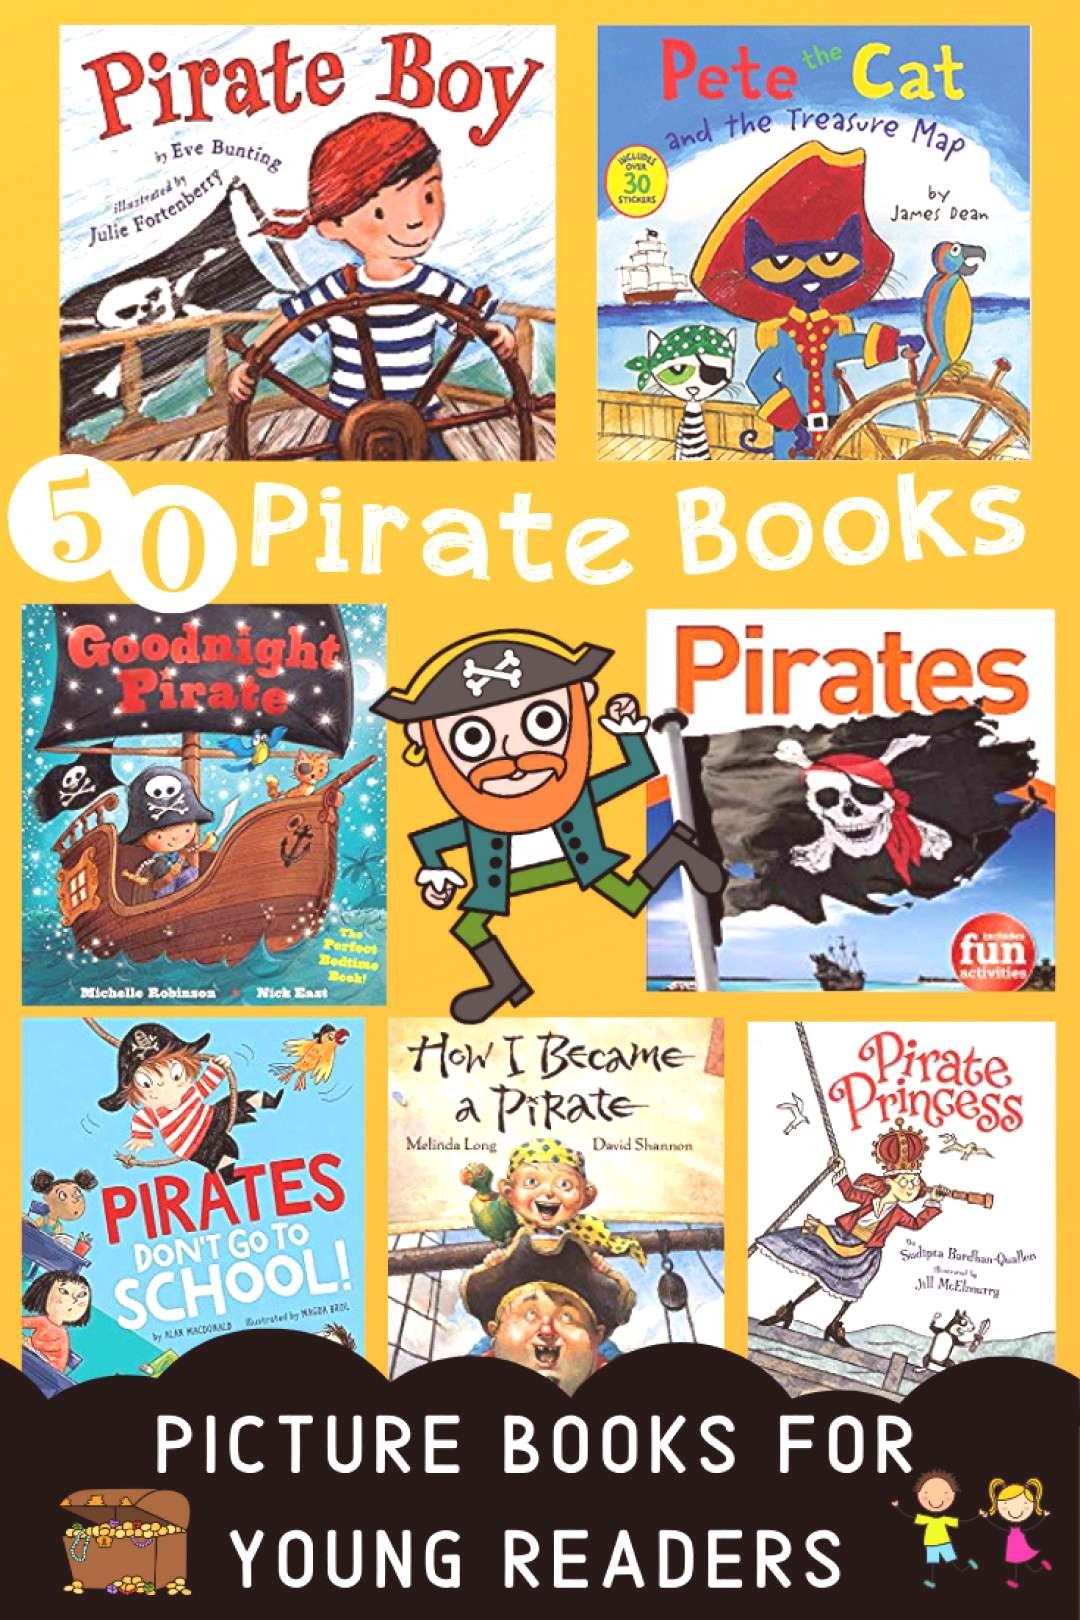 Kid Friendly Pirate Books - STEMHAX 50 Kid Friendly Pirate Books - Picture Books For Young Readers!